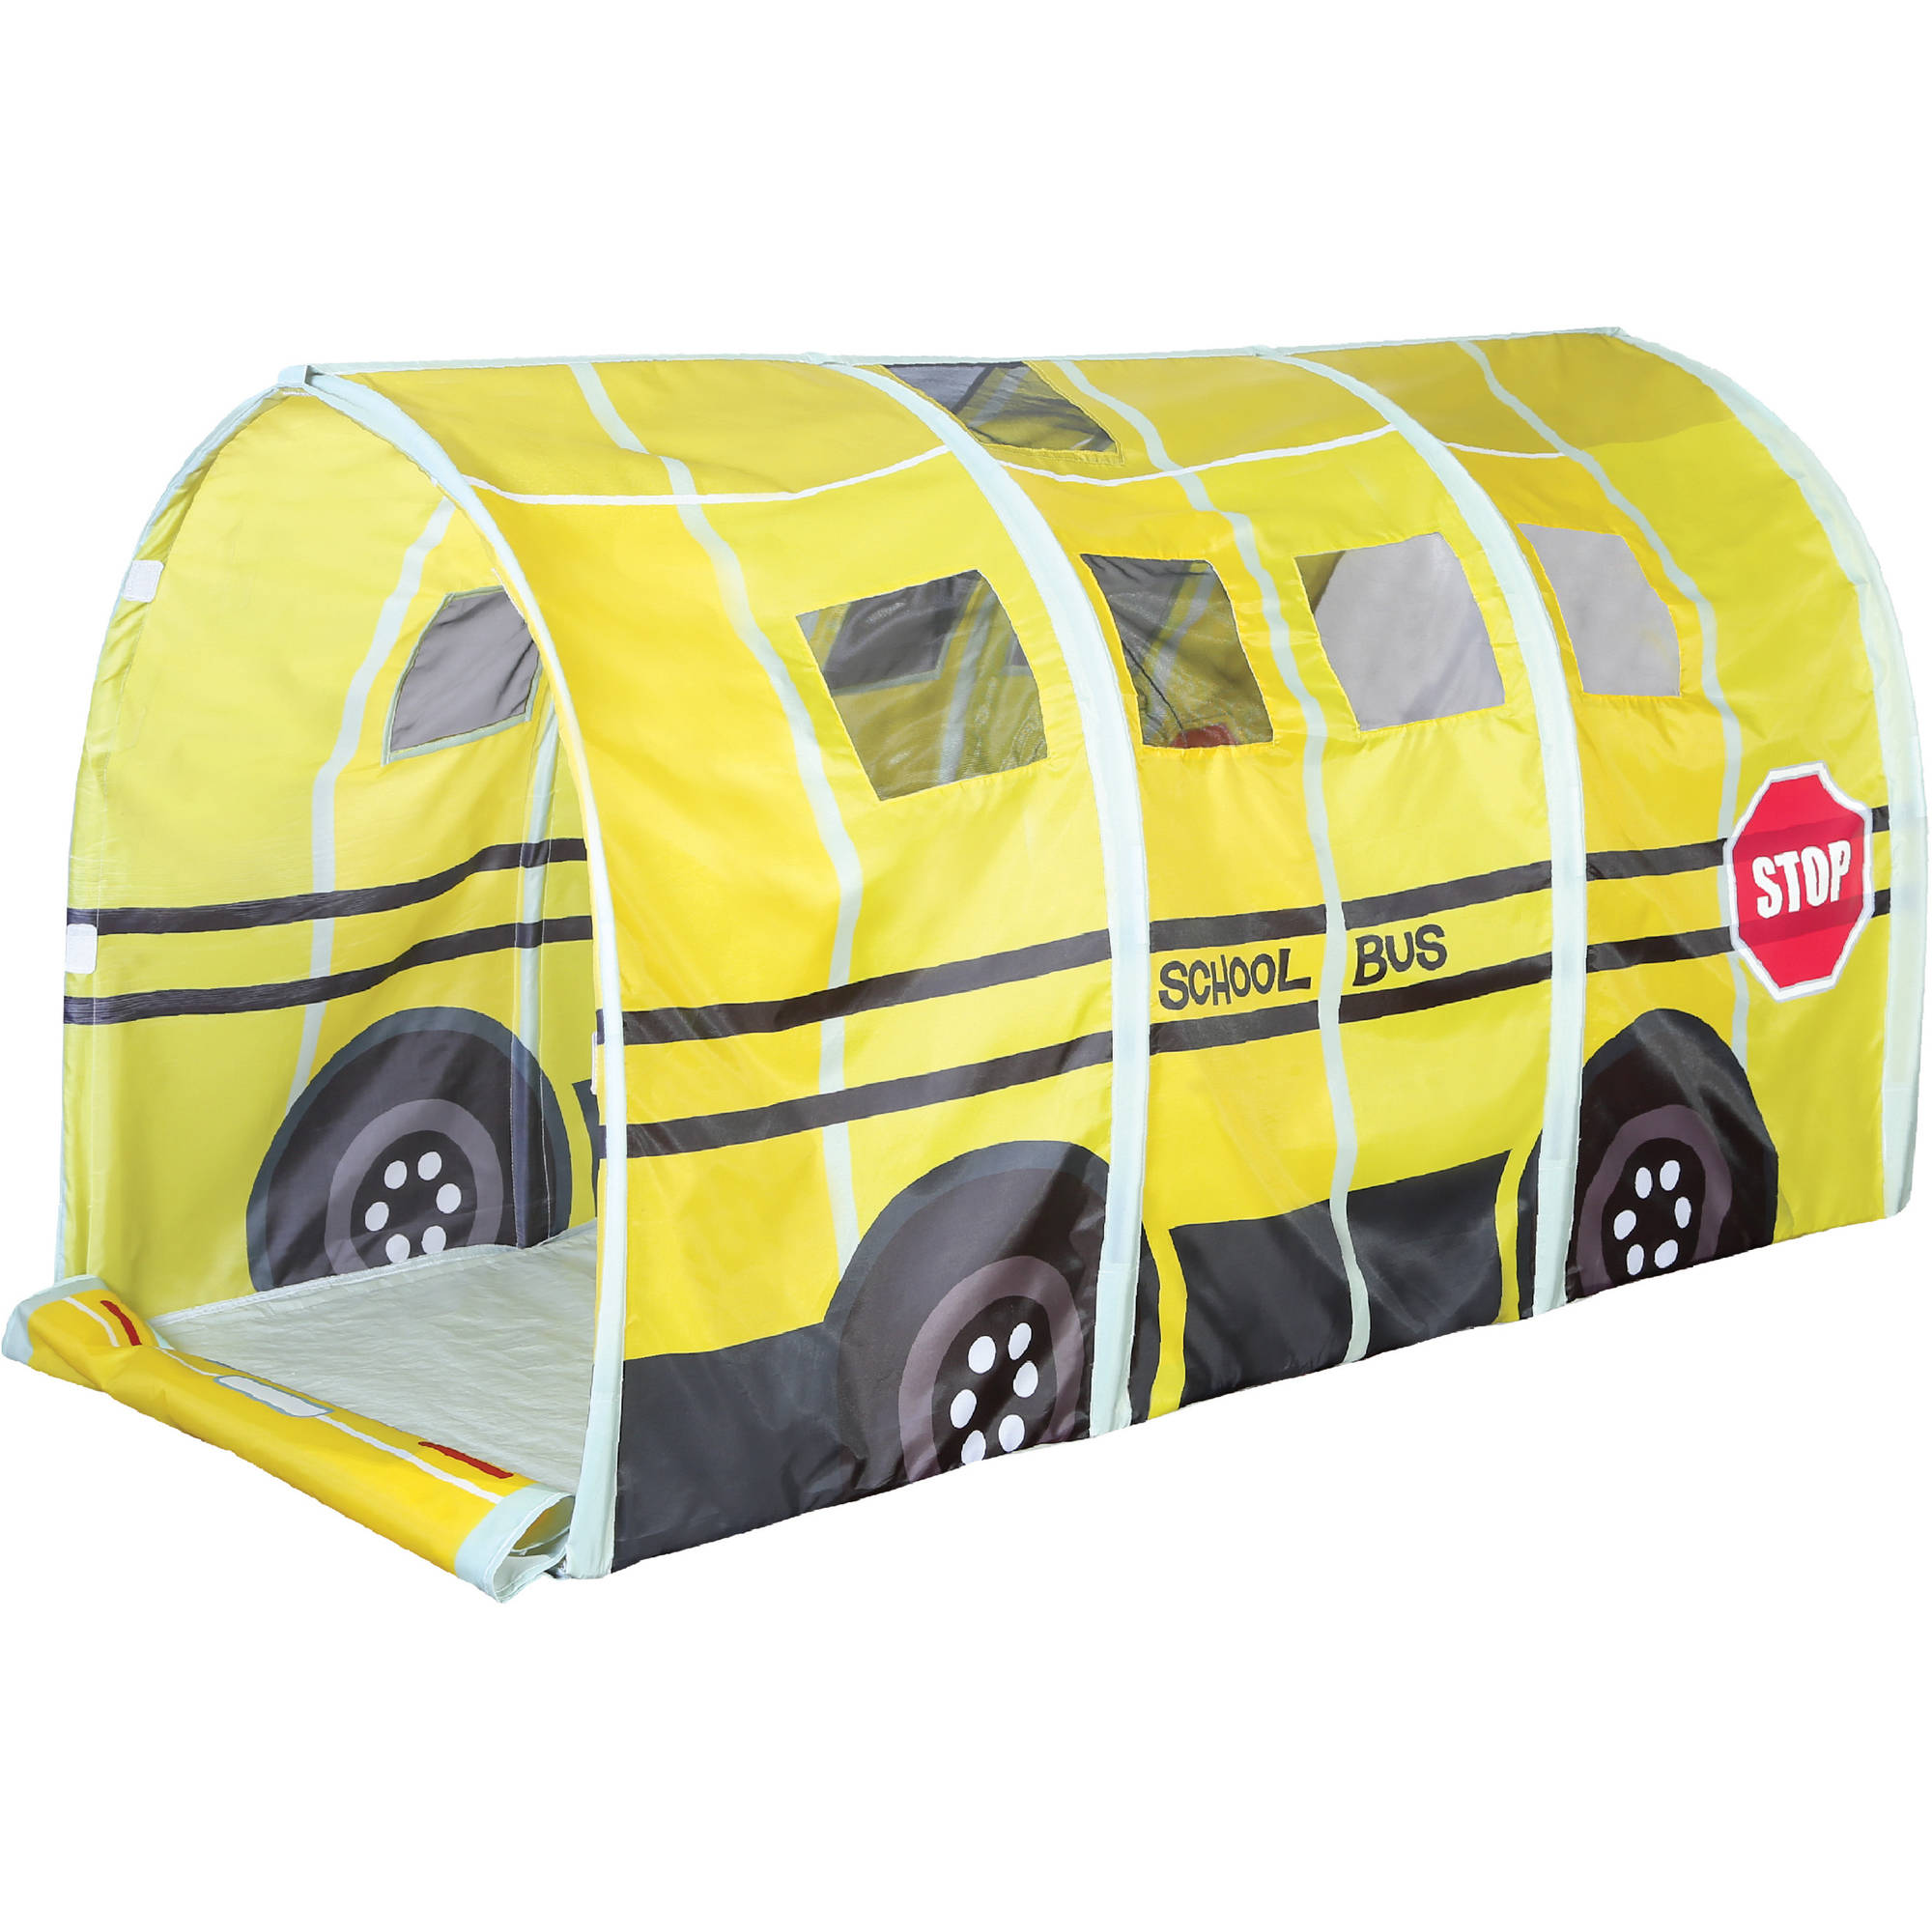 Pacific Play Tents School Bus 6' Long D-Tunnel